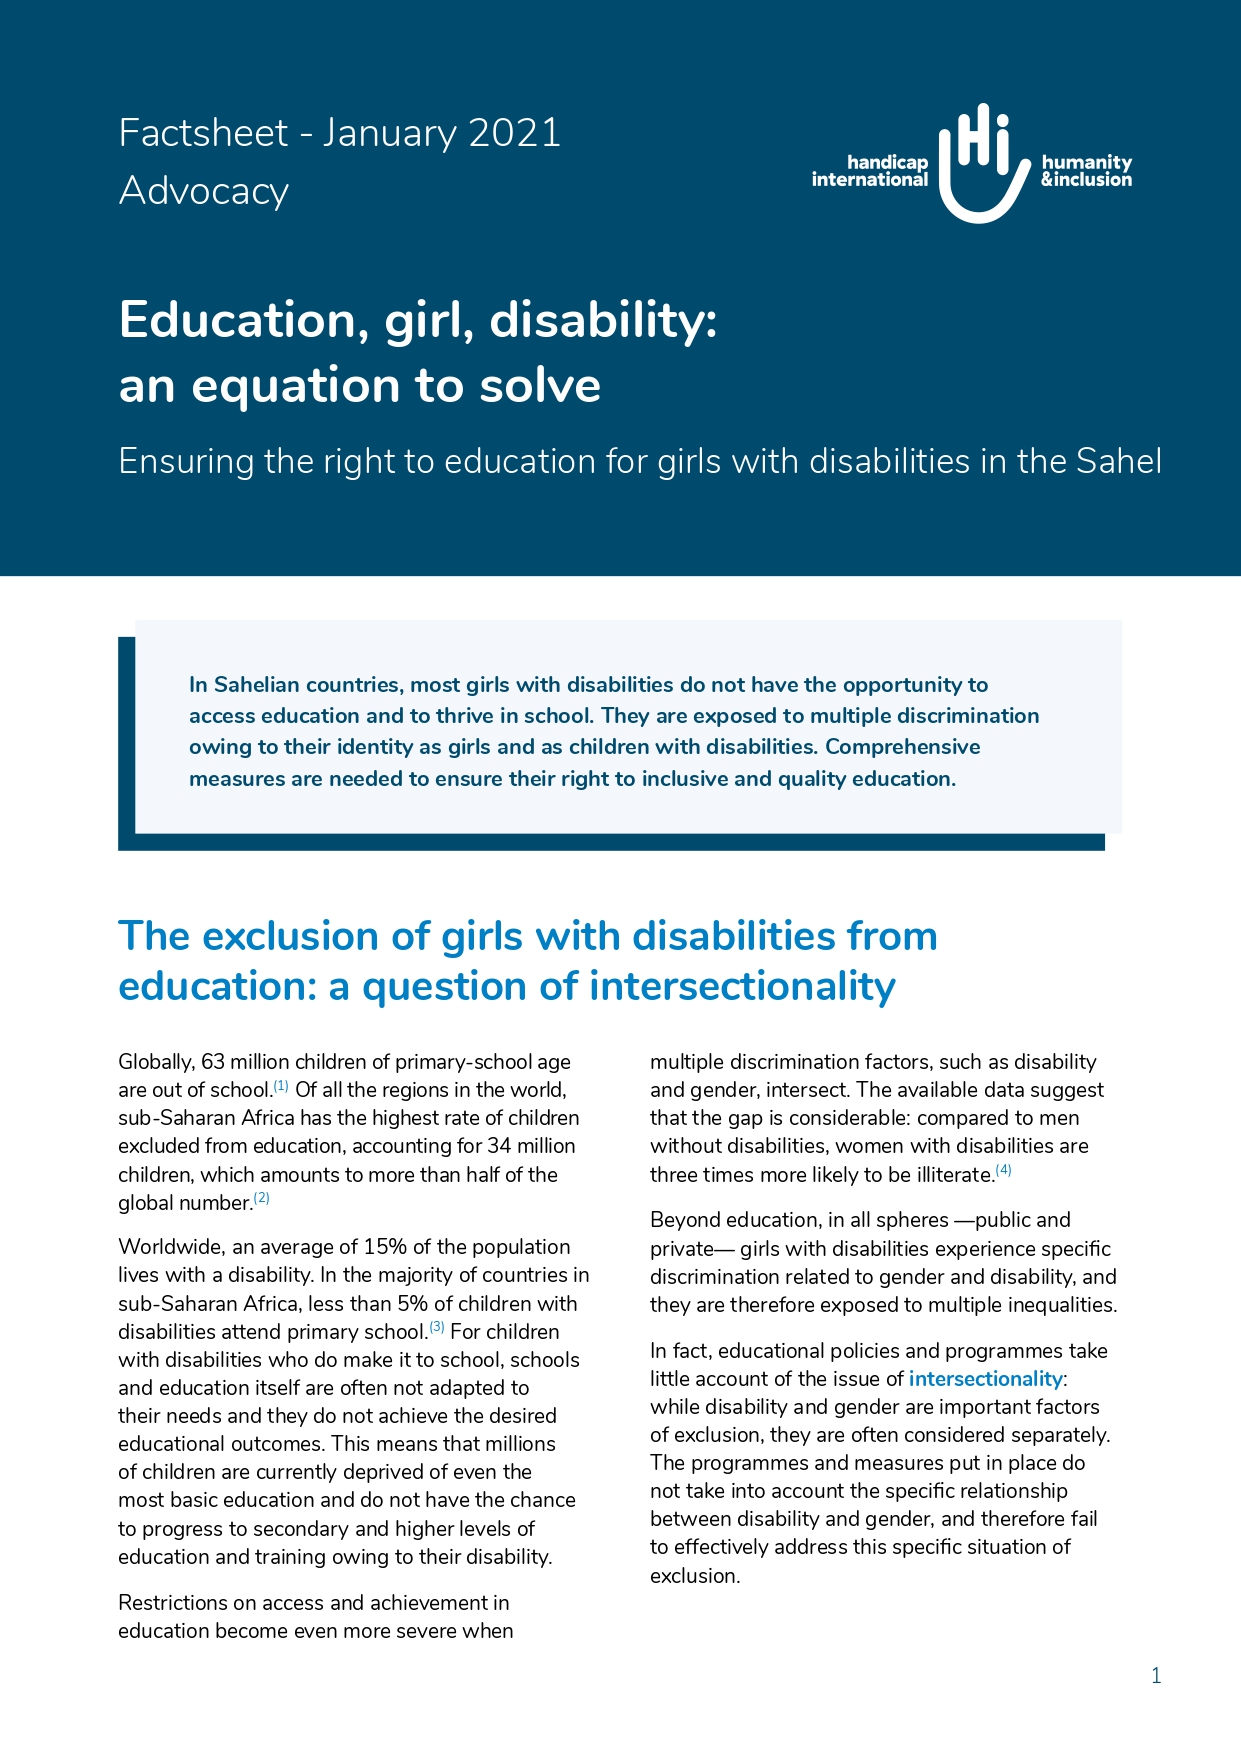 Education, girl, disability: an equation to solve